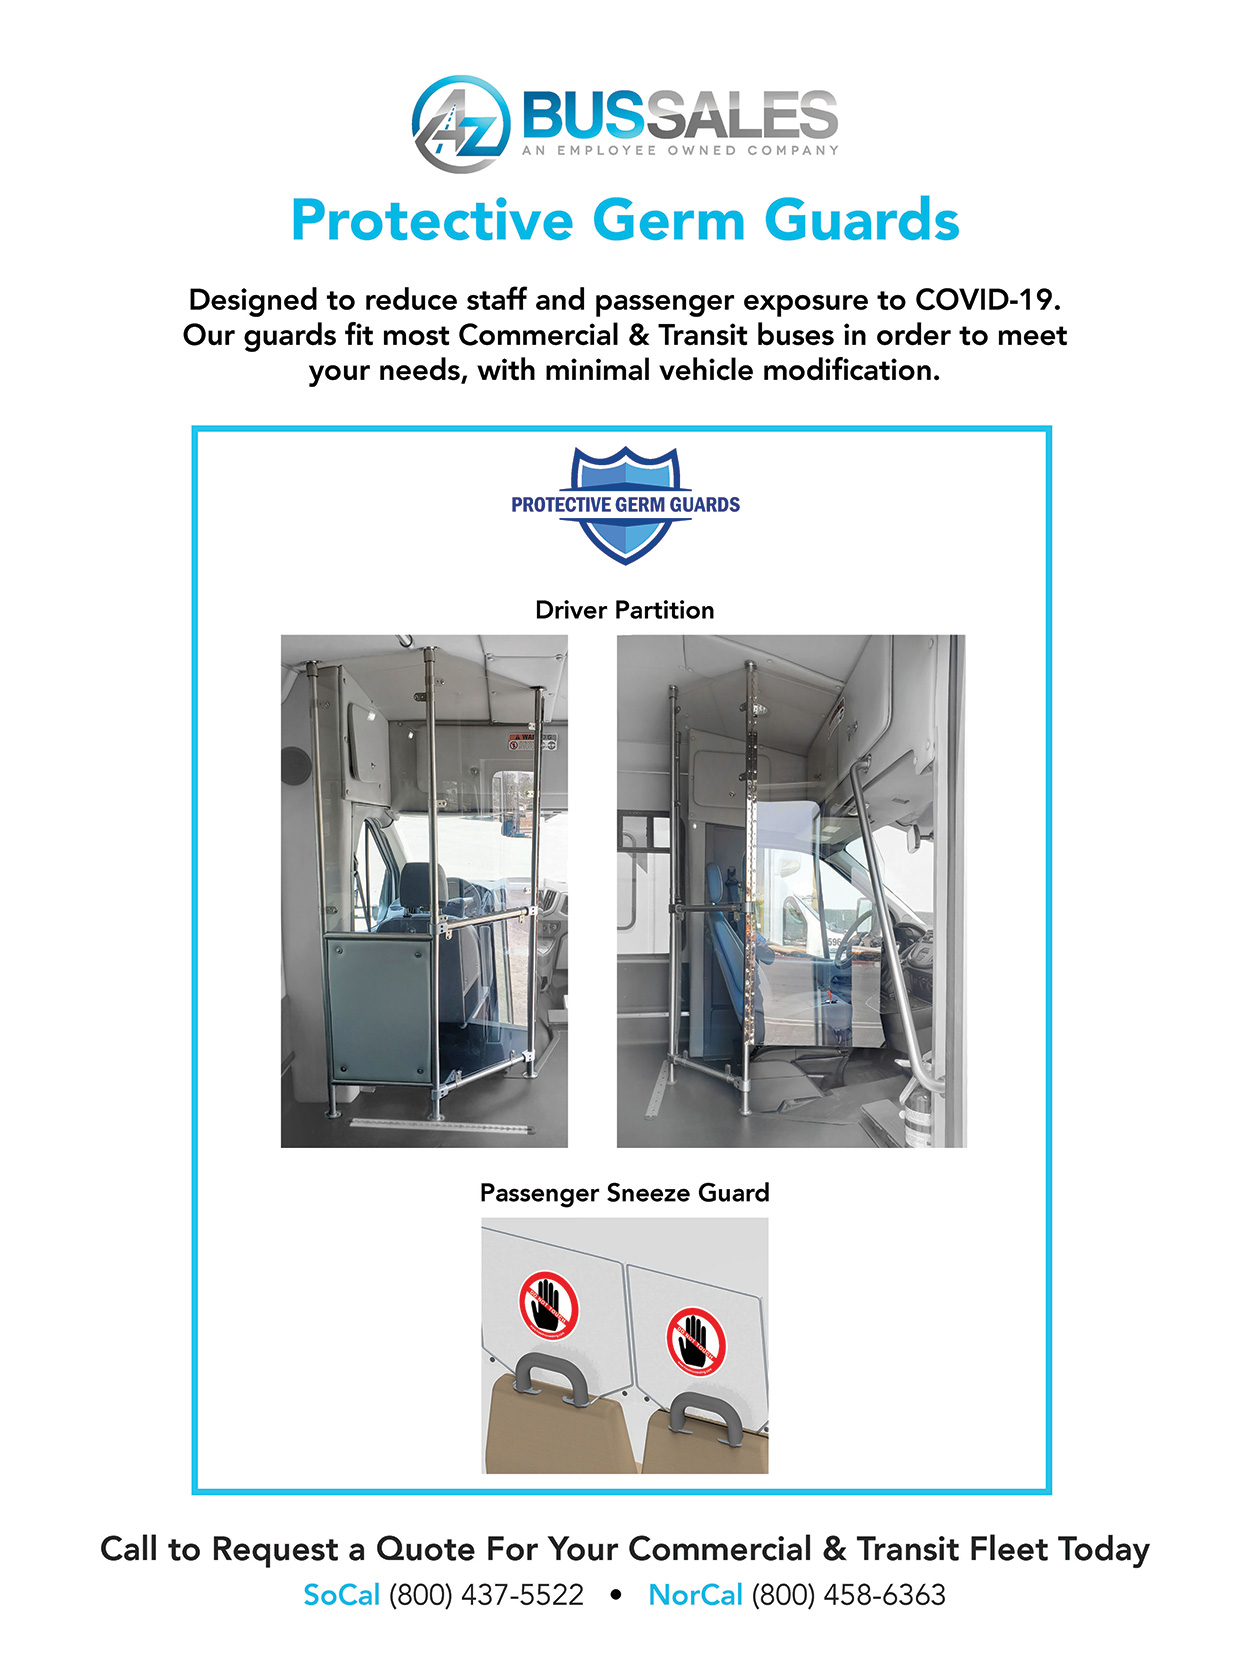 Protective-Germ-Guards-Flyer_Installed-P1